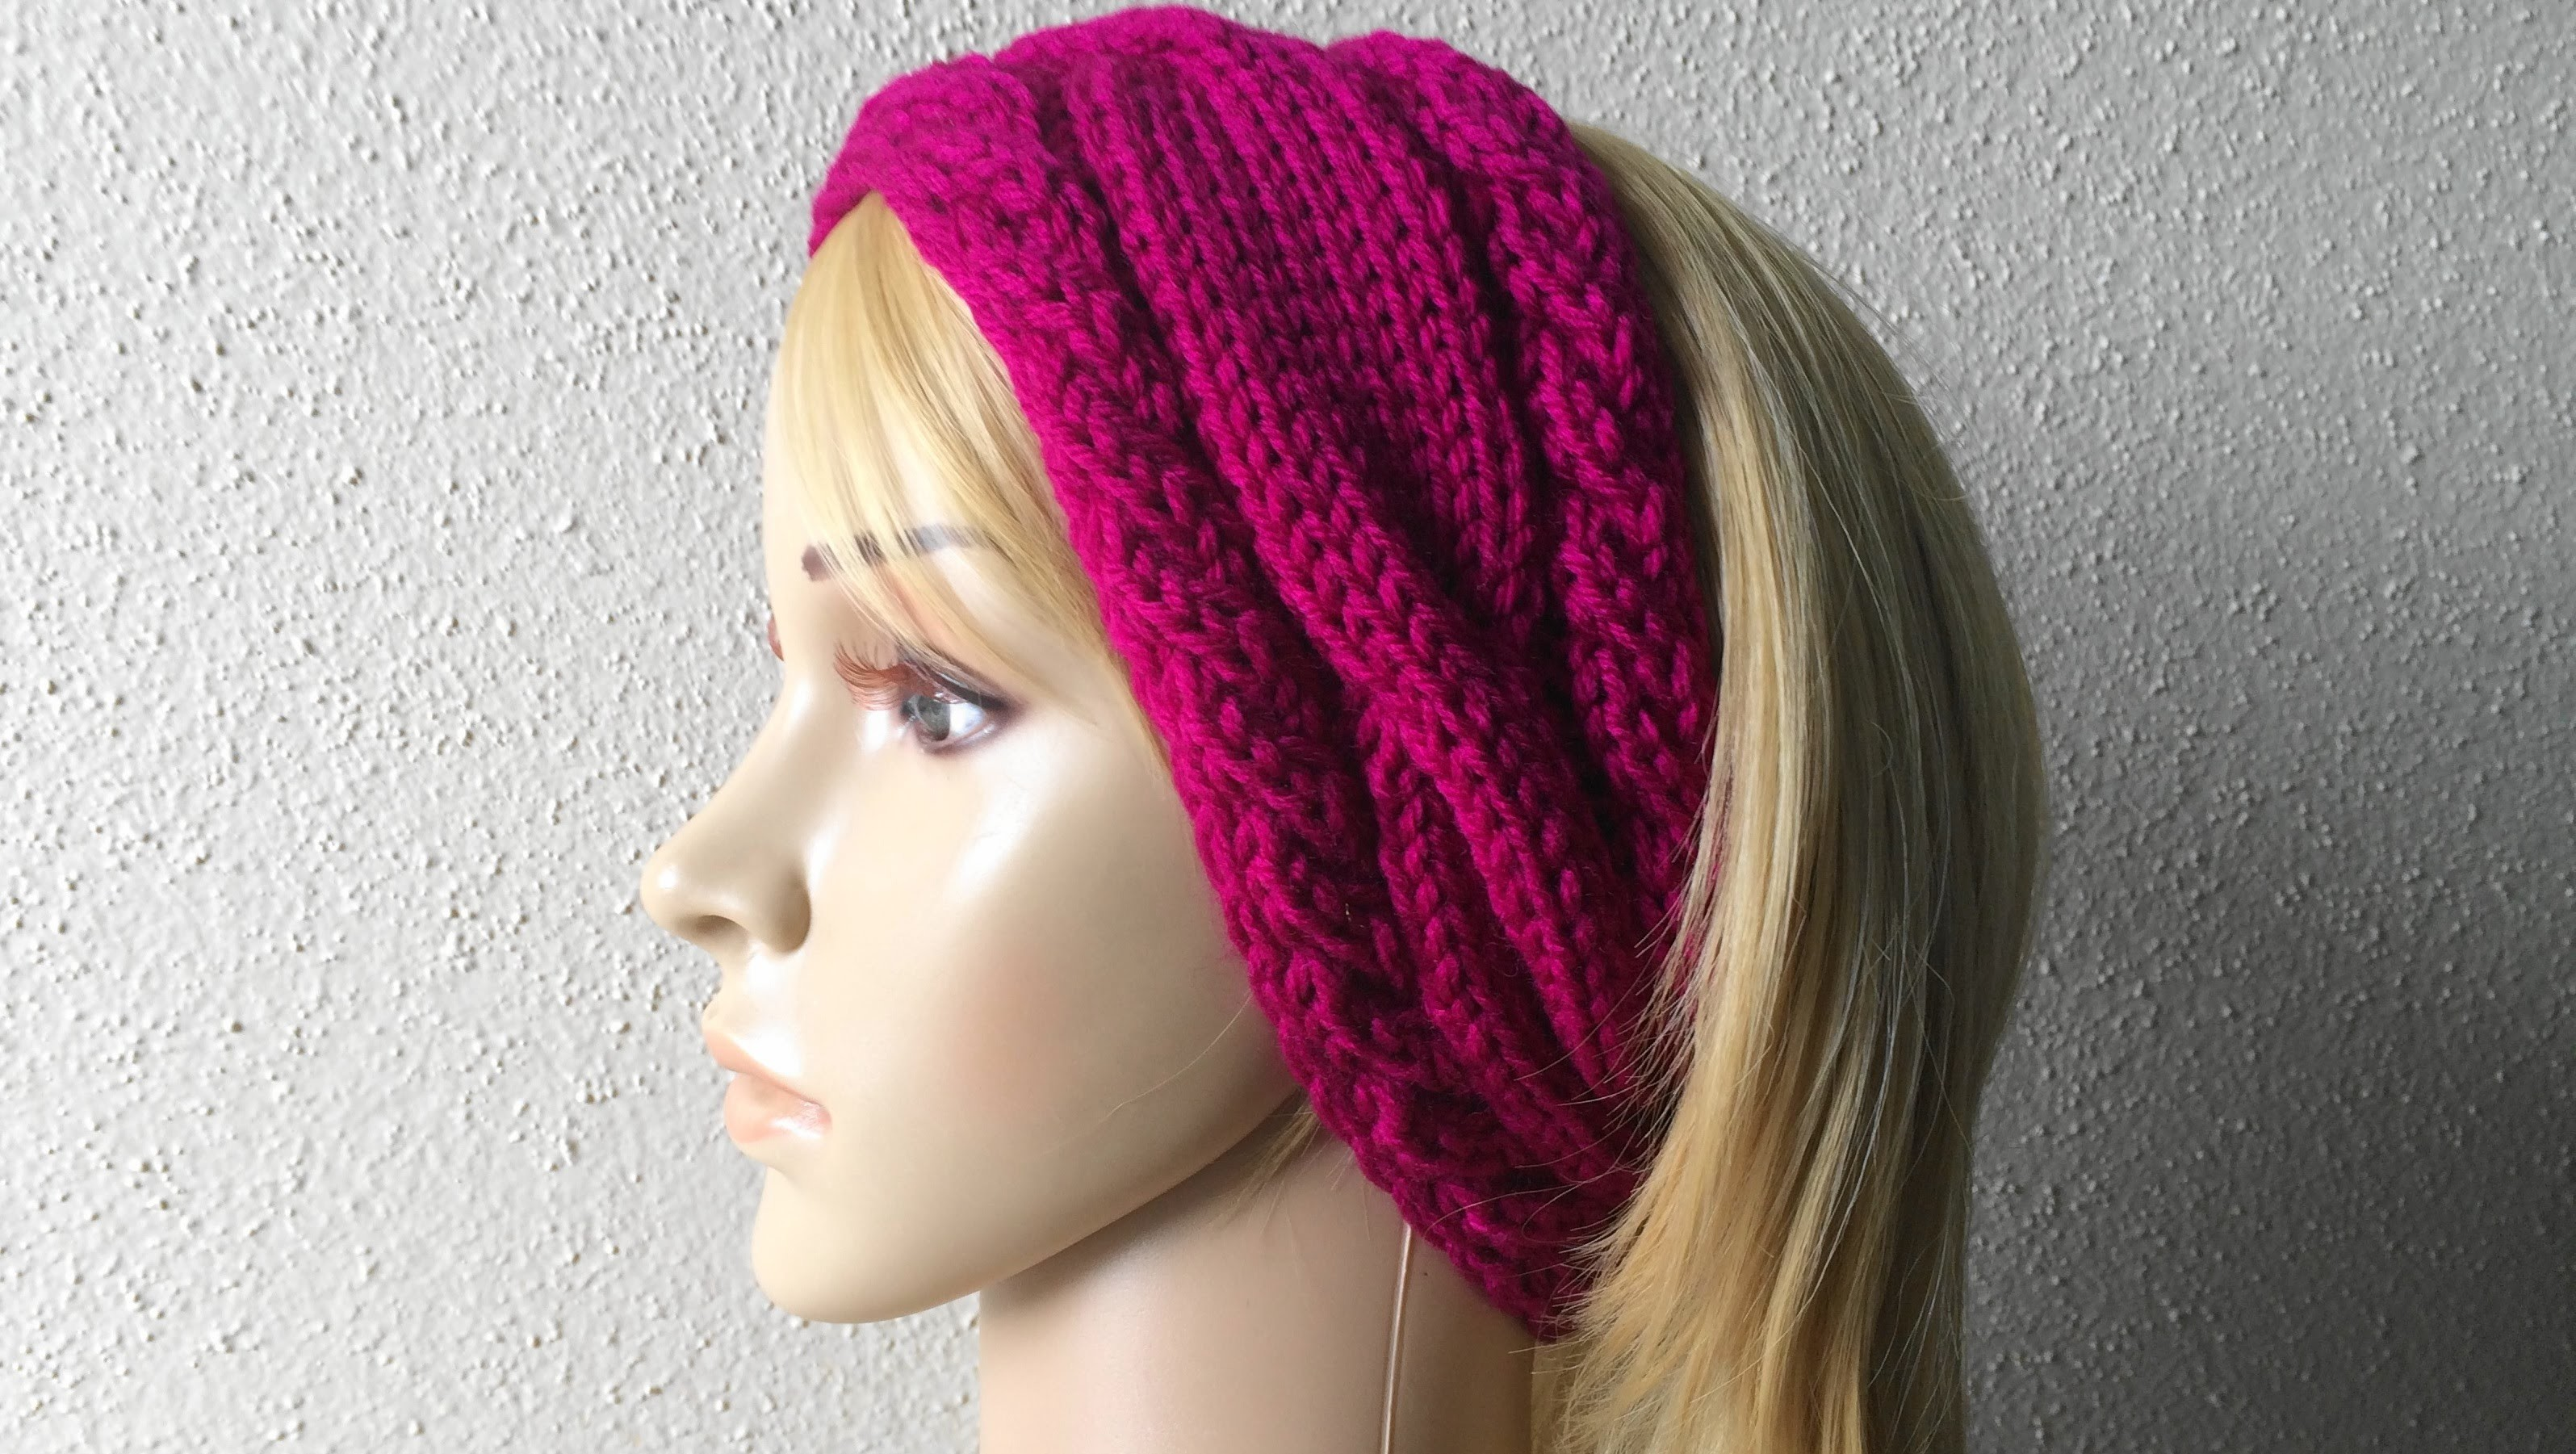 How To Knit A Cable Headband, Lilu's Knitting Corner Video # 40